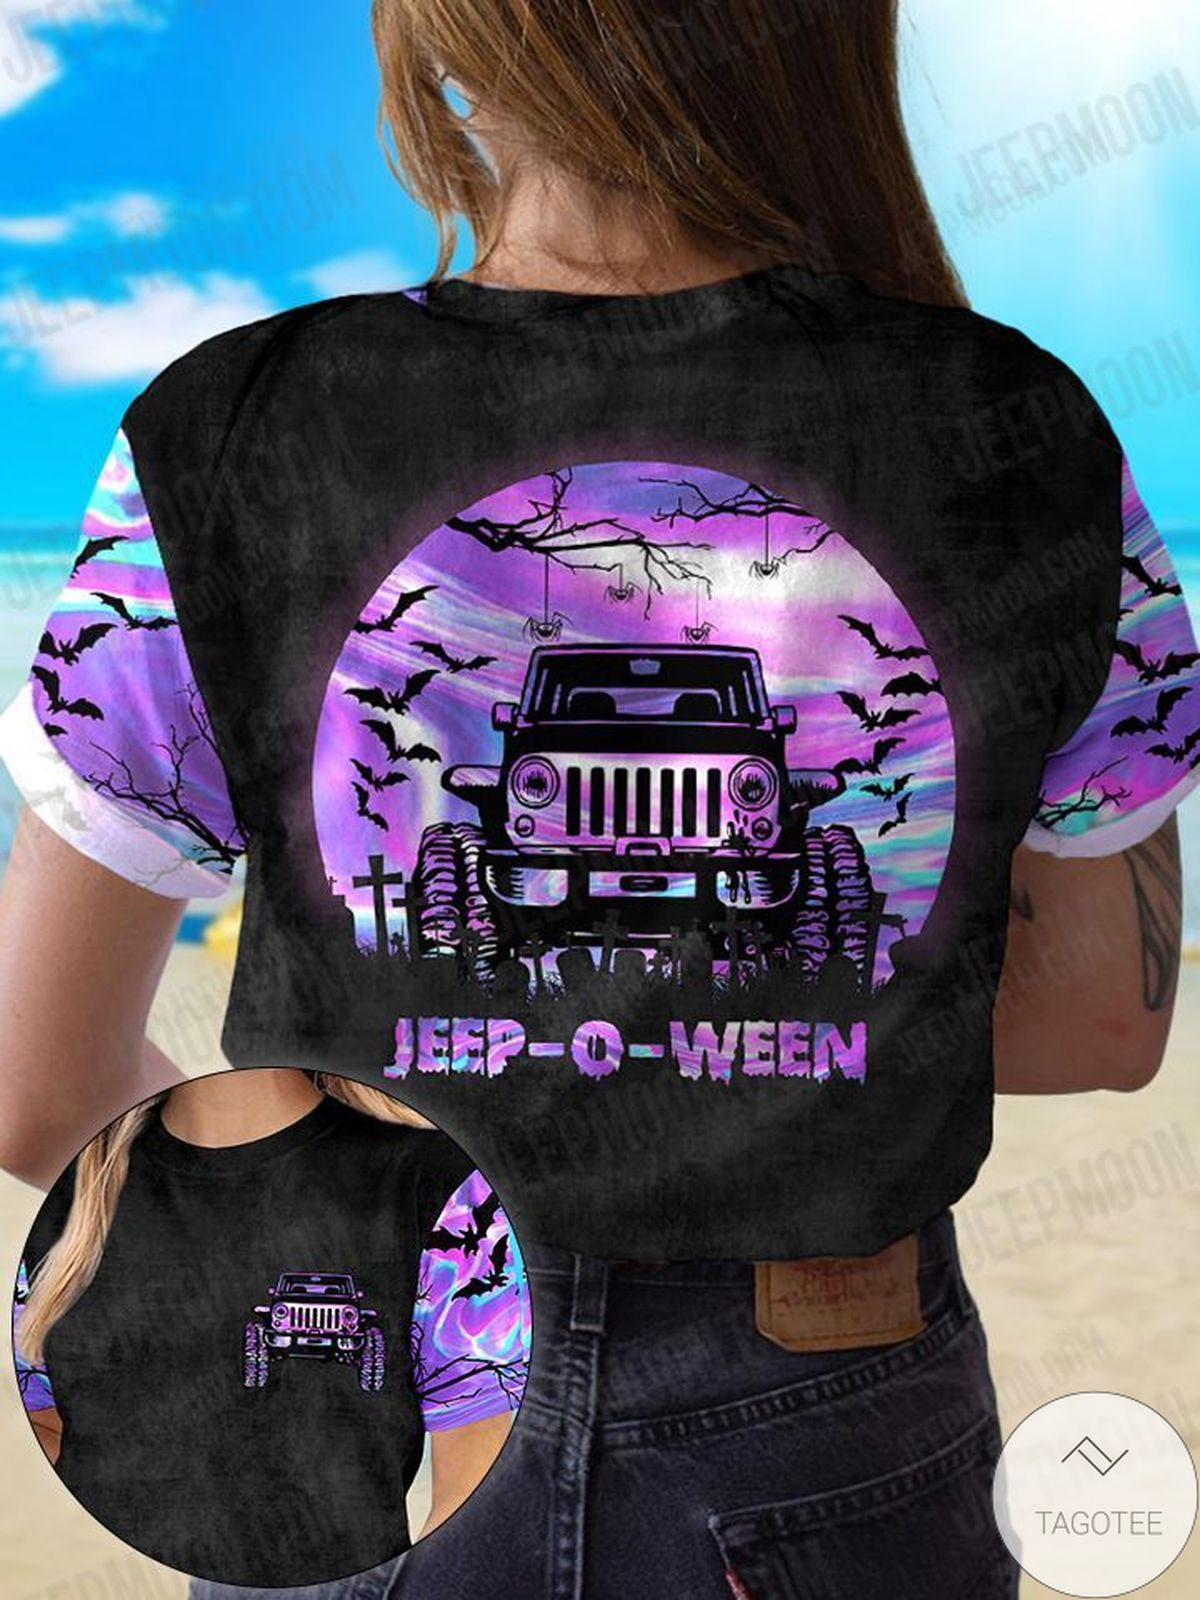 Best Gift Jeep - O - Ween T-Shirt